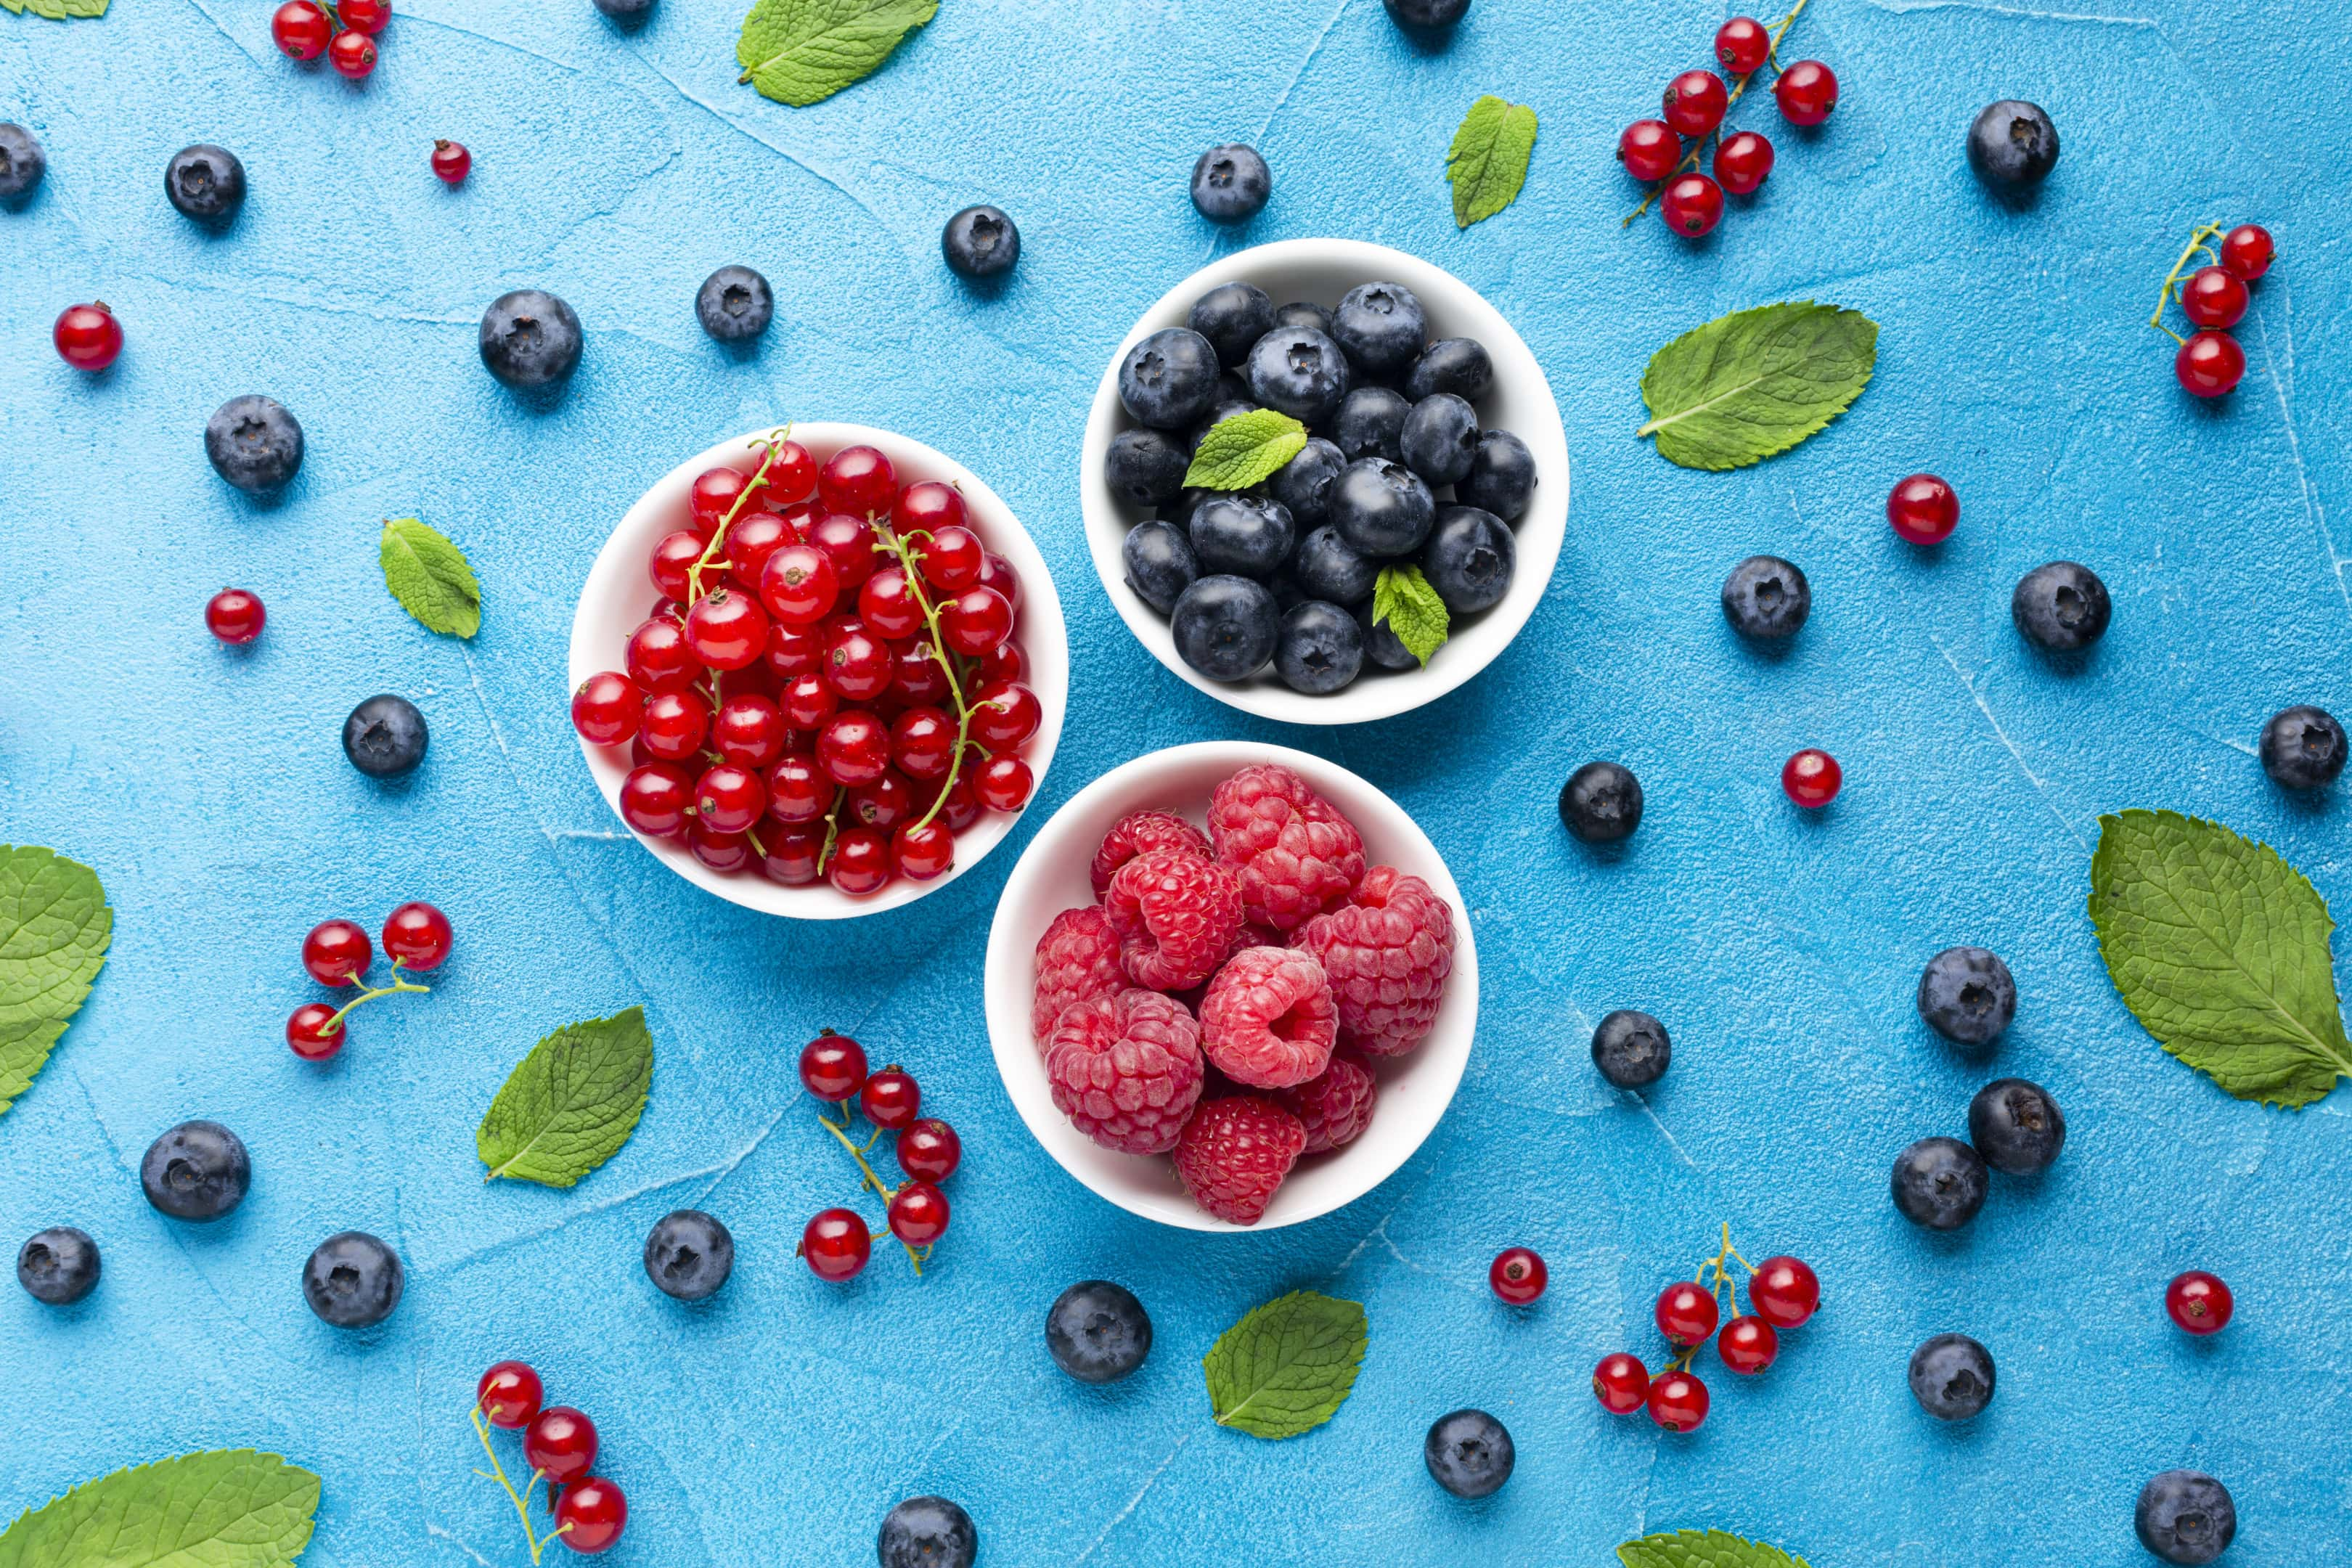 Bowls of fresh berries on blue background